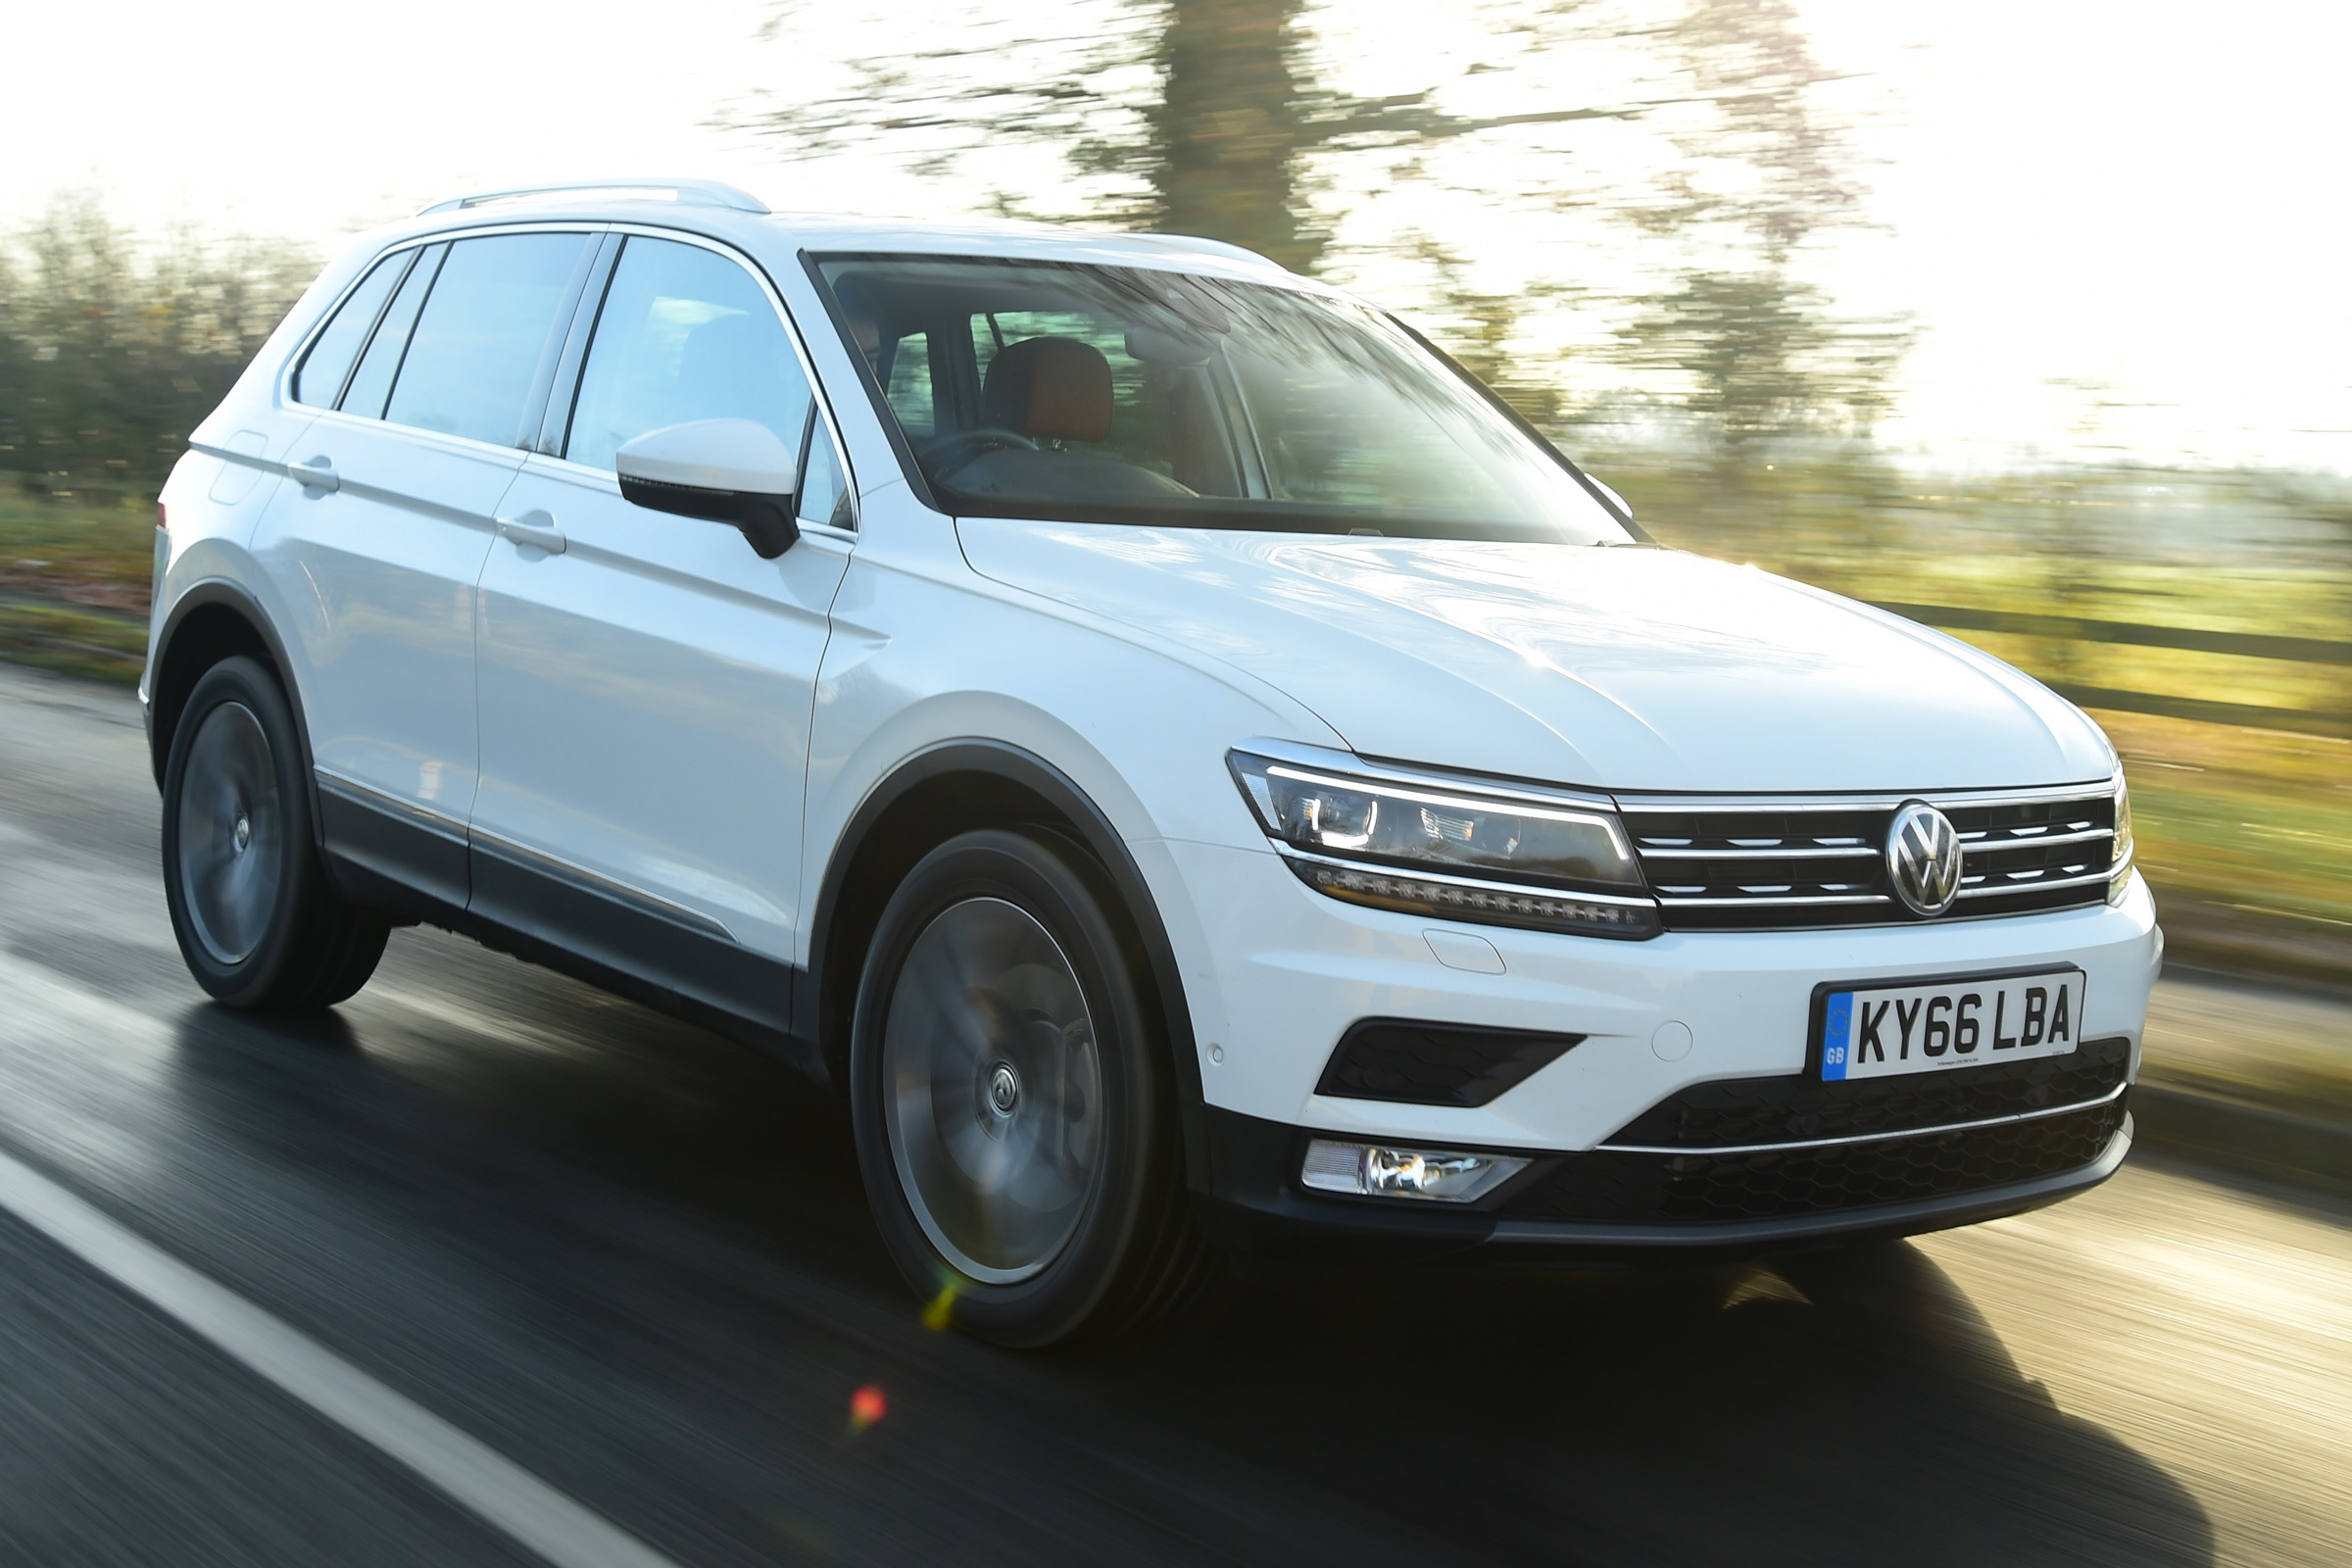 2017 Volkswagen Tiguan White (Photo 23 of 27)